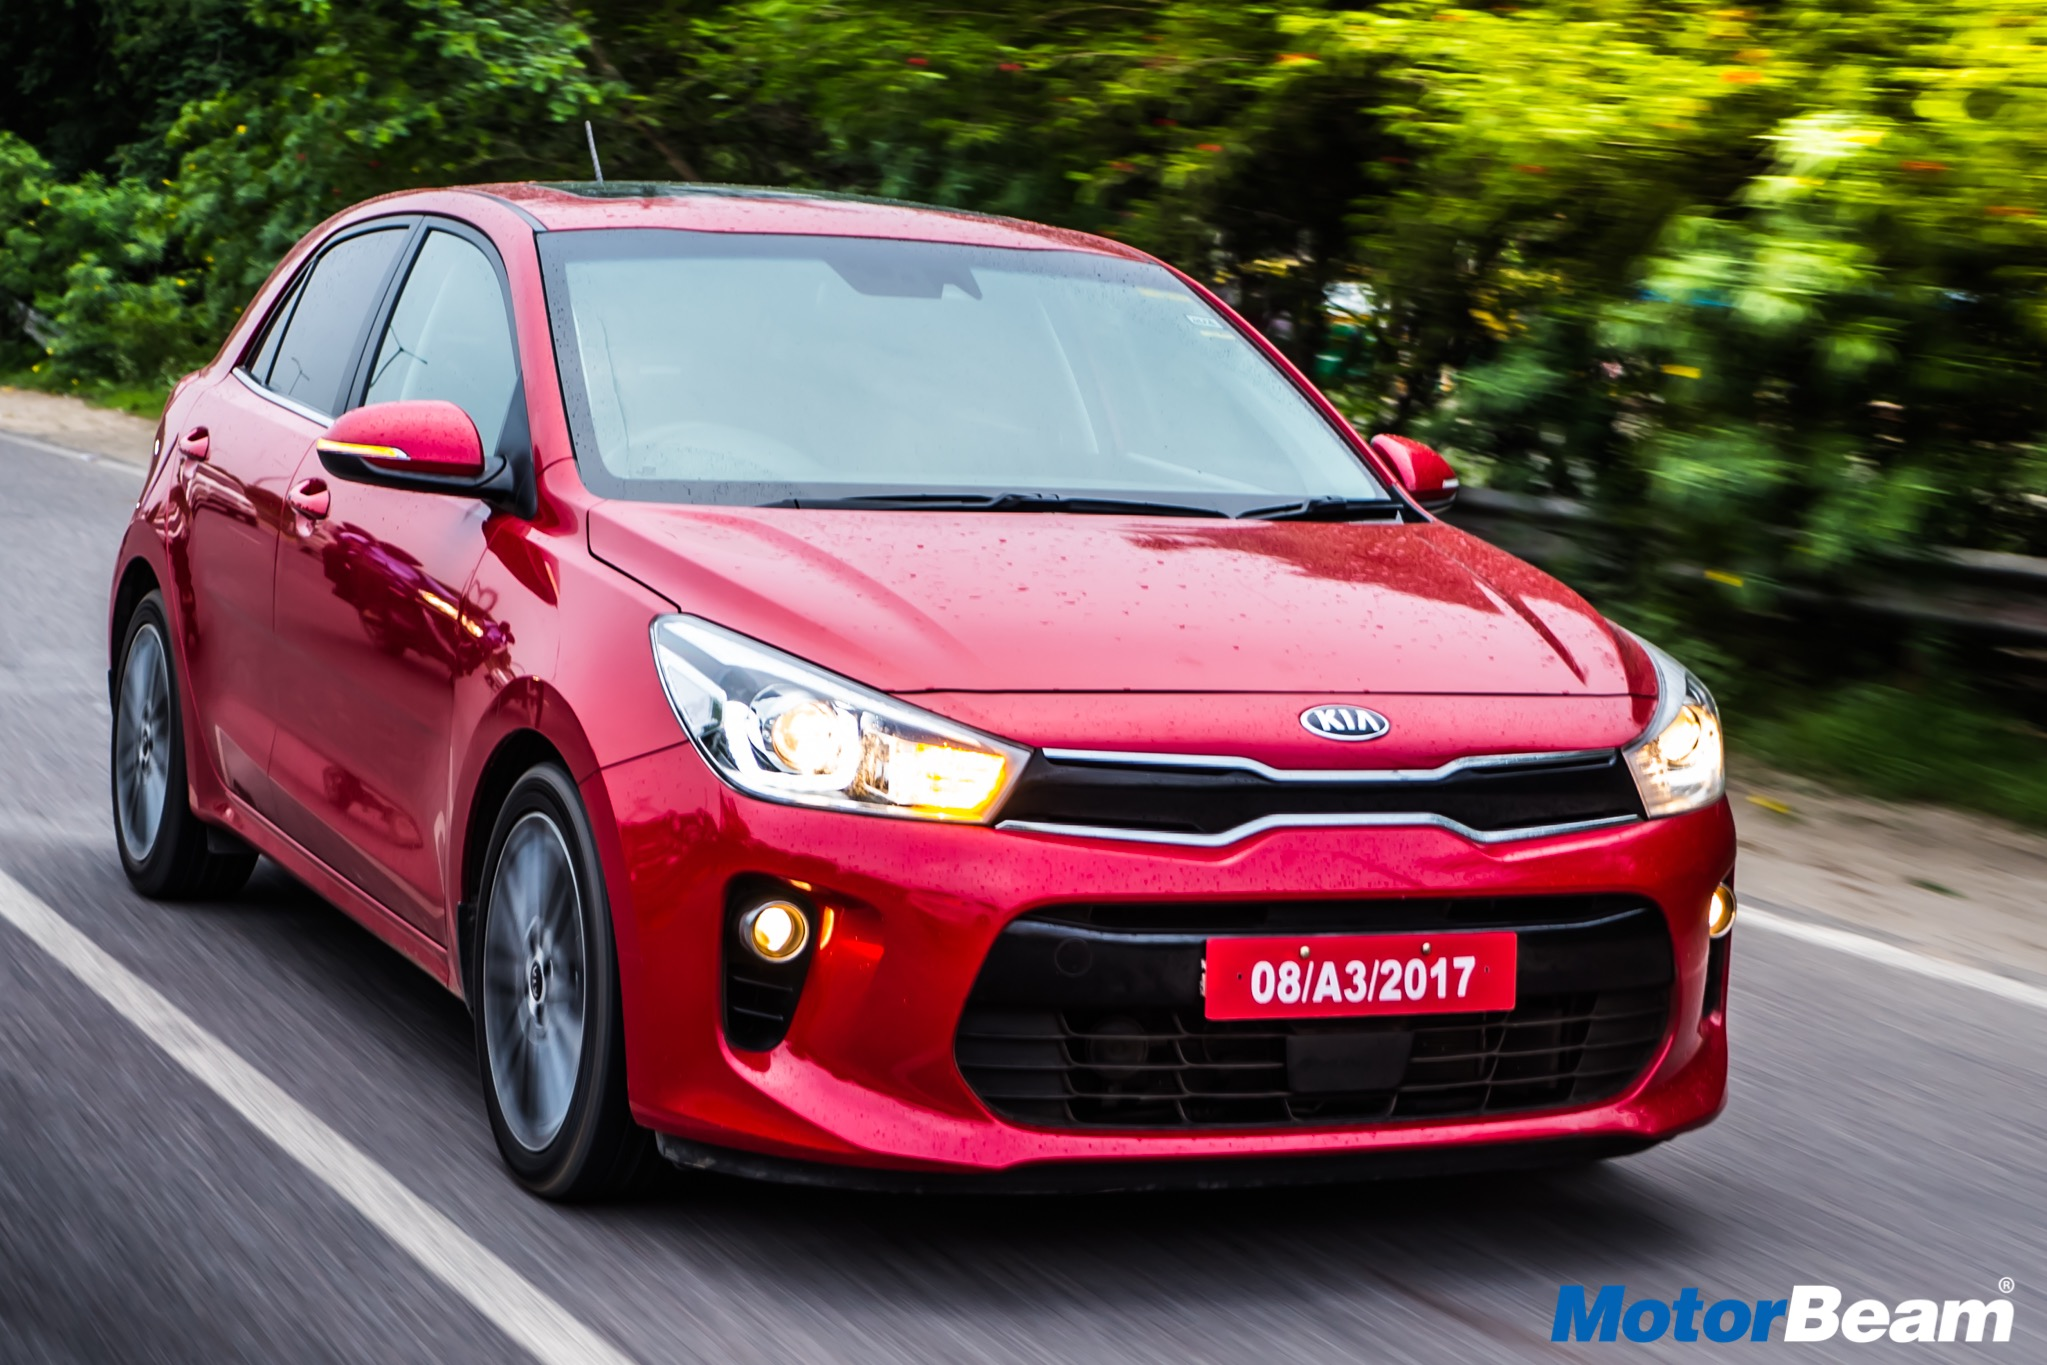 2018 Kia Rio Video Review